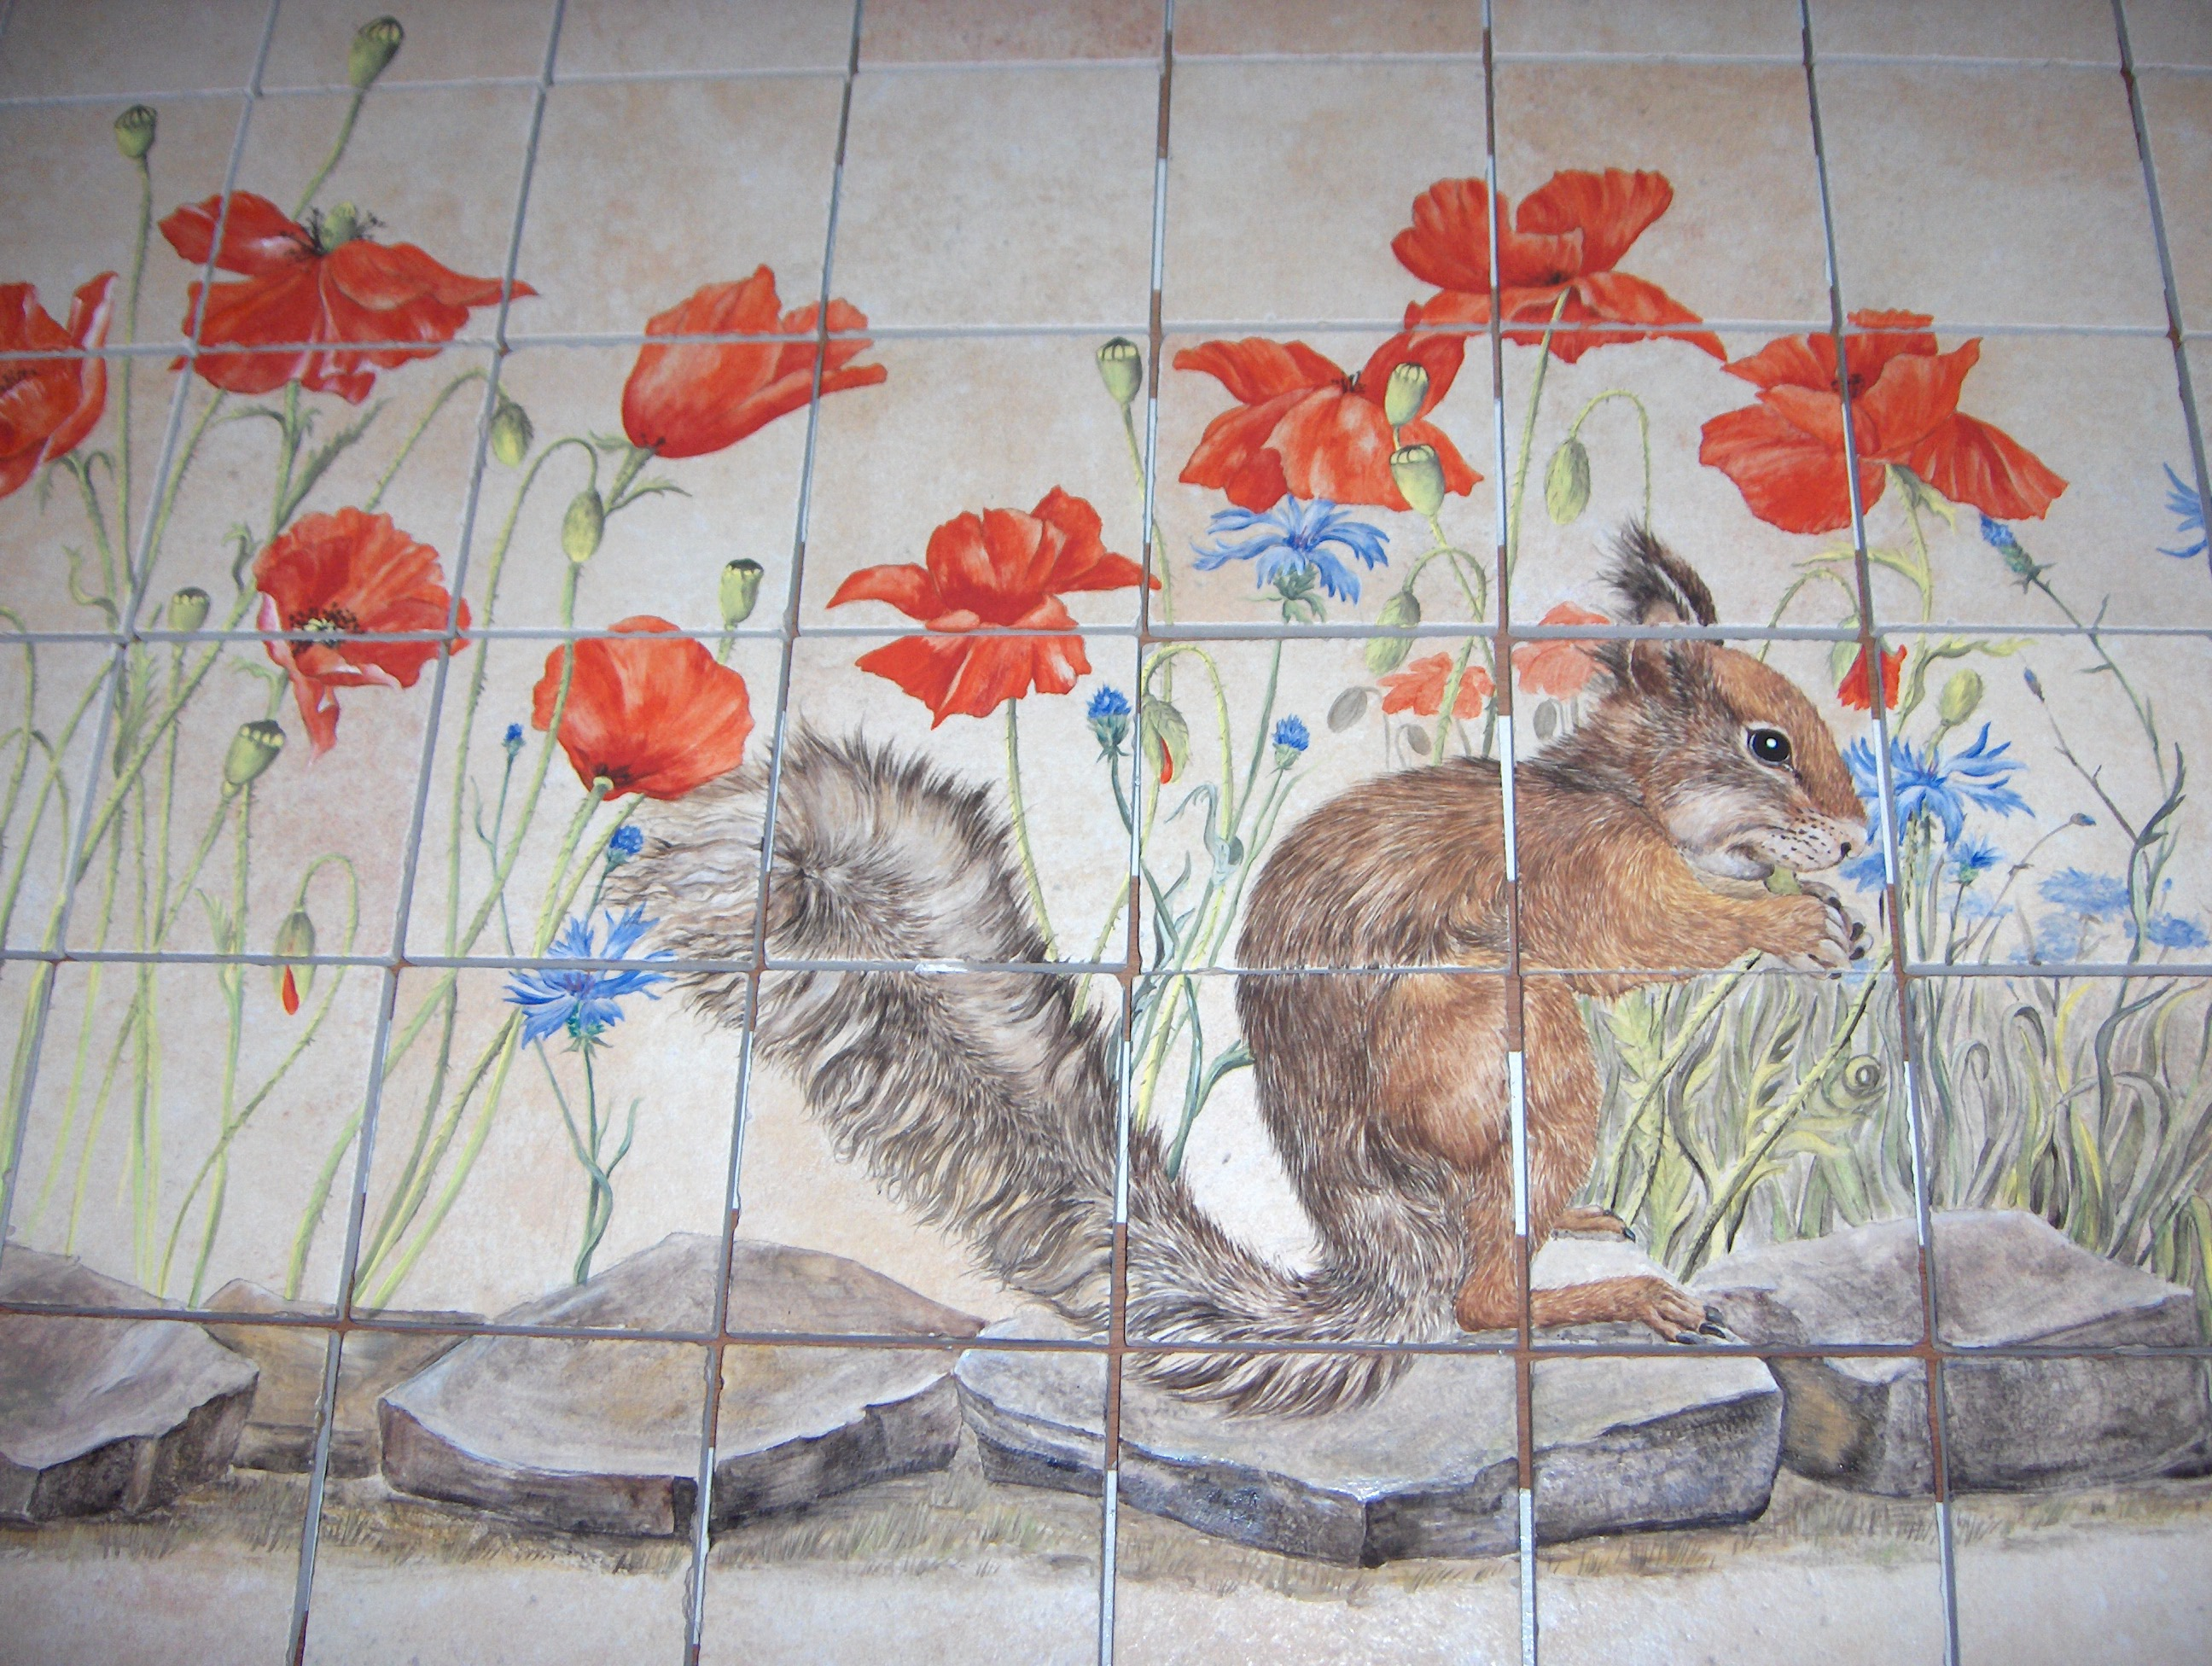 Kitchen Mural Maryline Garbe Hand Painted Tiles For Kitchen And Bathroom